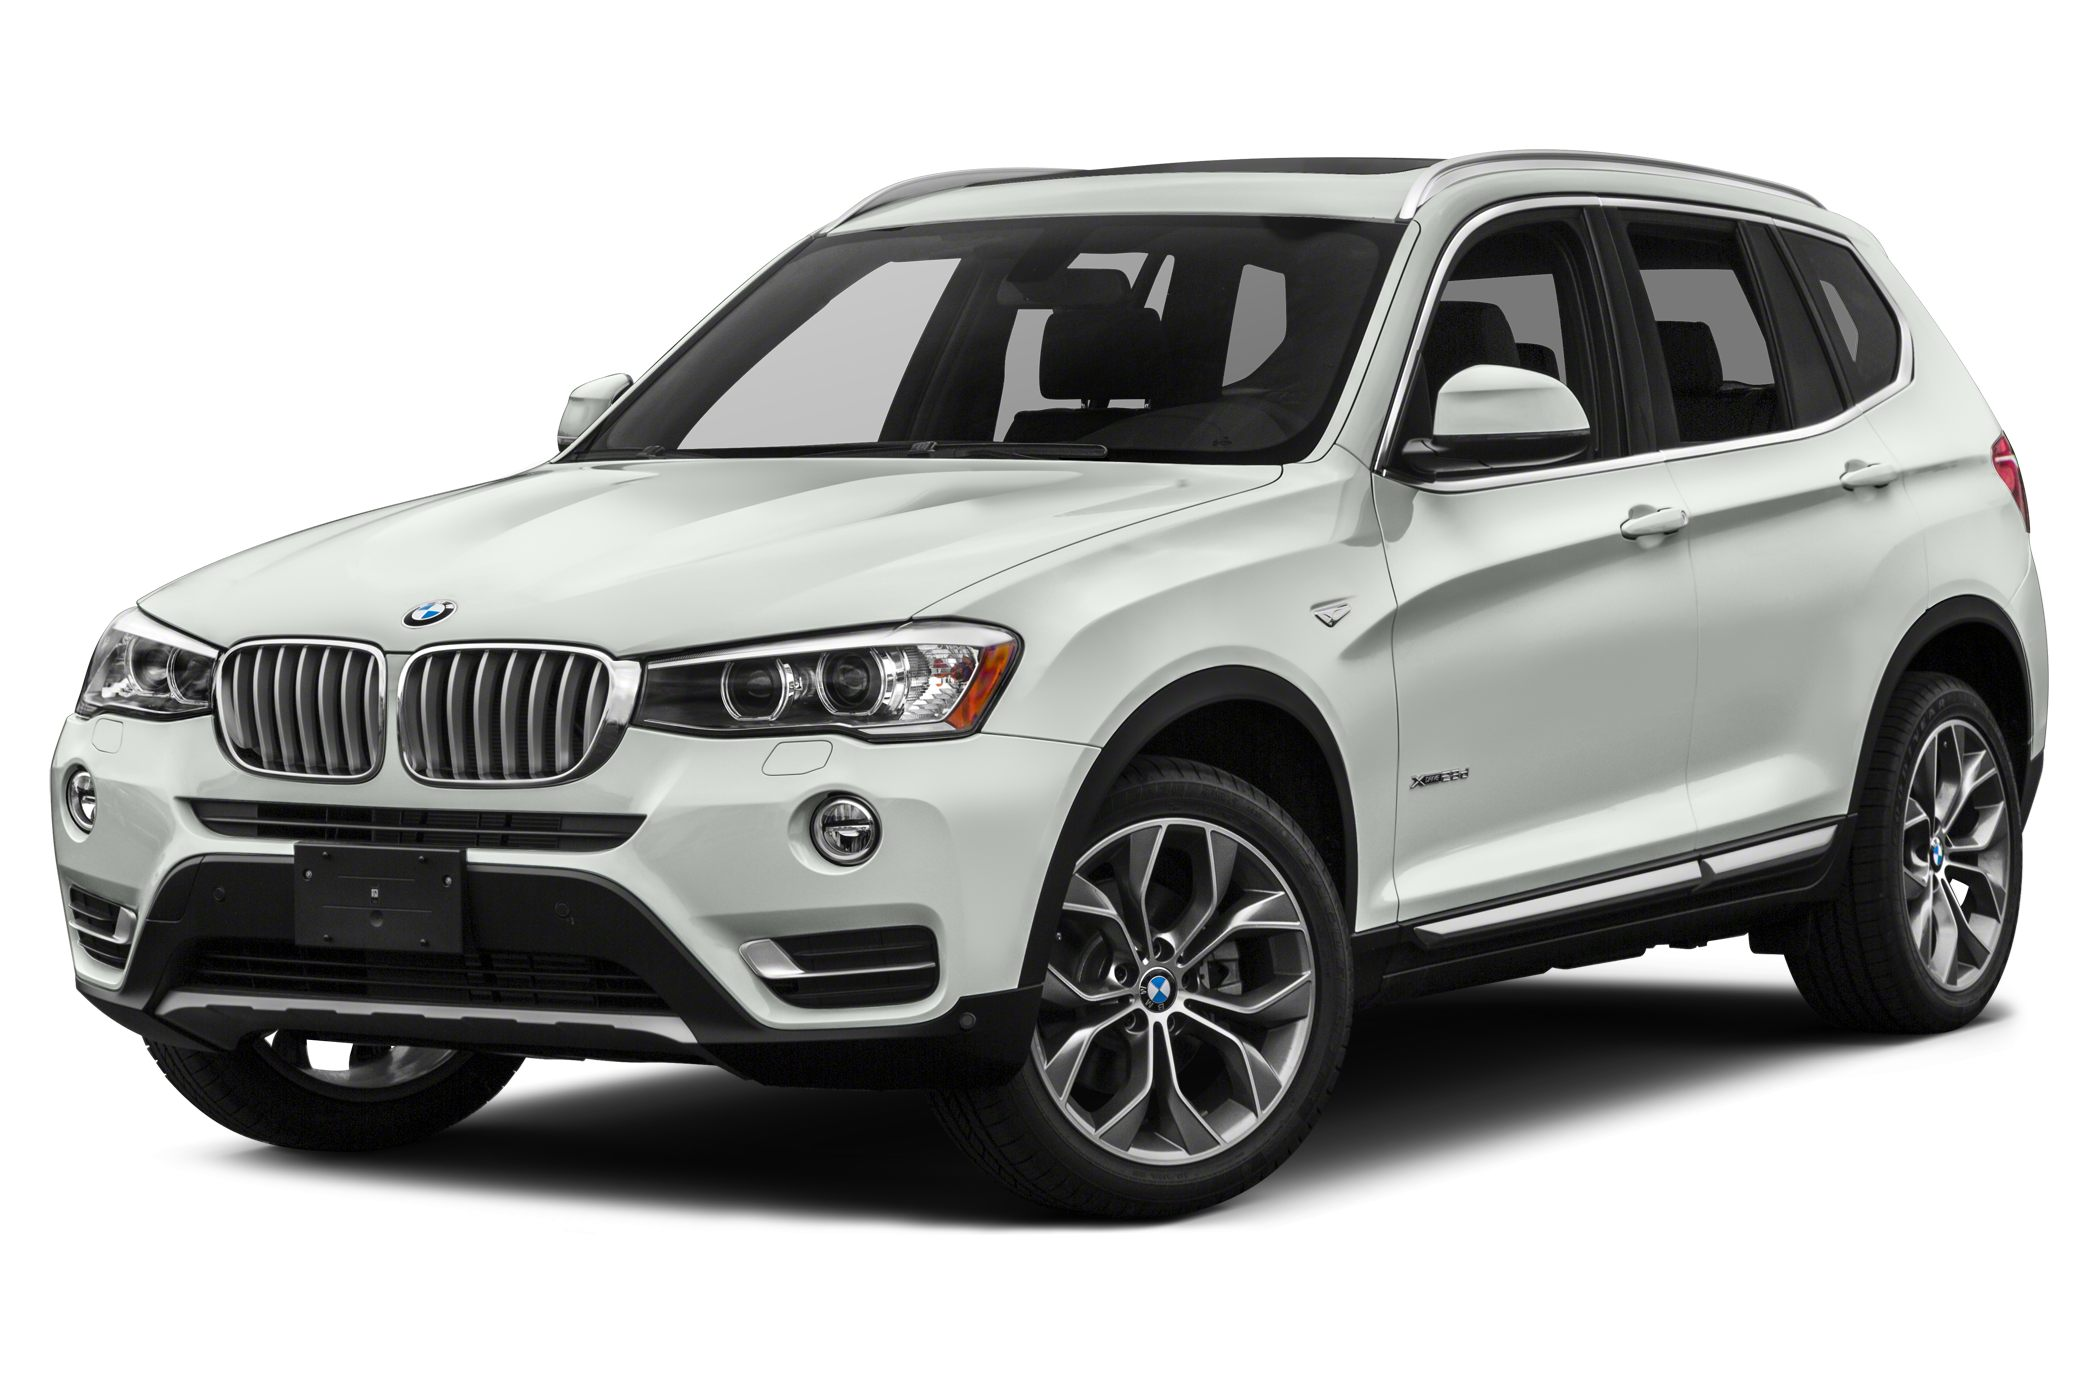 2015 BMW X3 xDrive28i Visit Best Auto Group online at bronxbestautocom to see more pictures of th